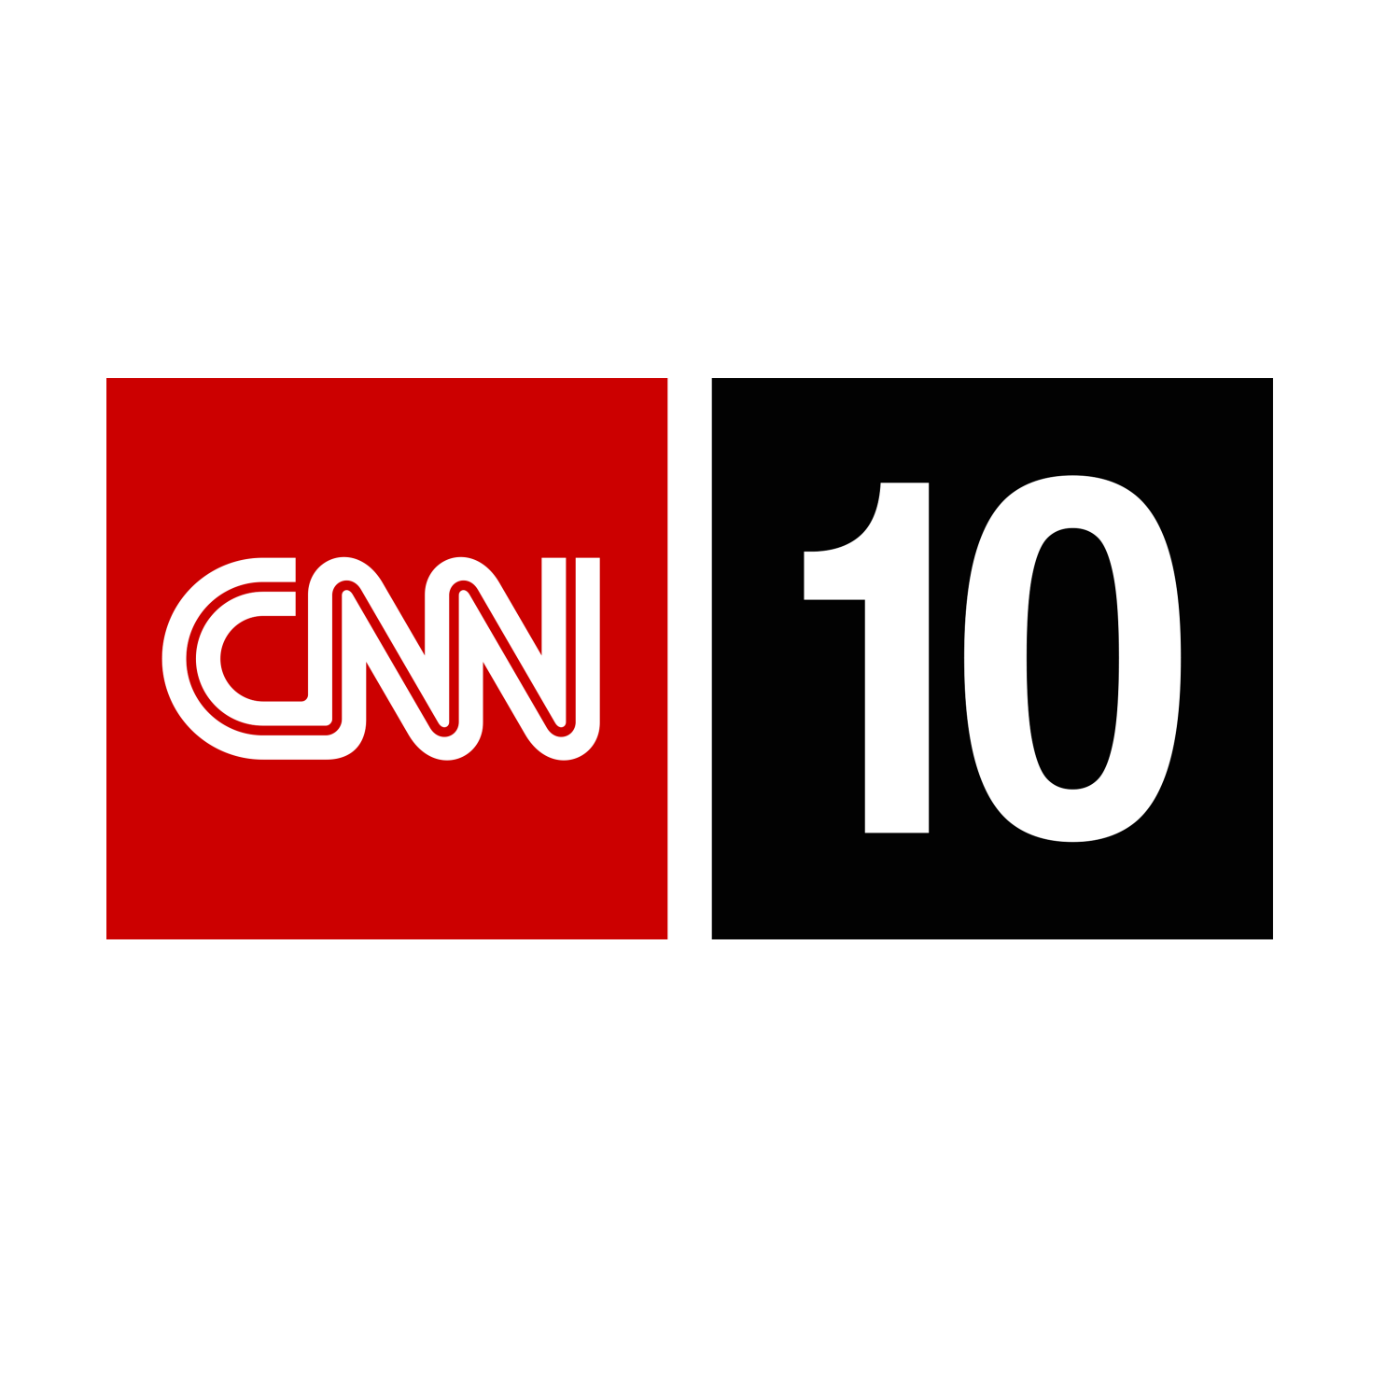 CNN Student News - May 17, 2013